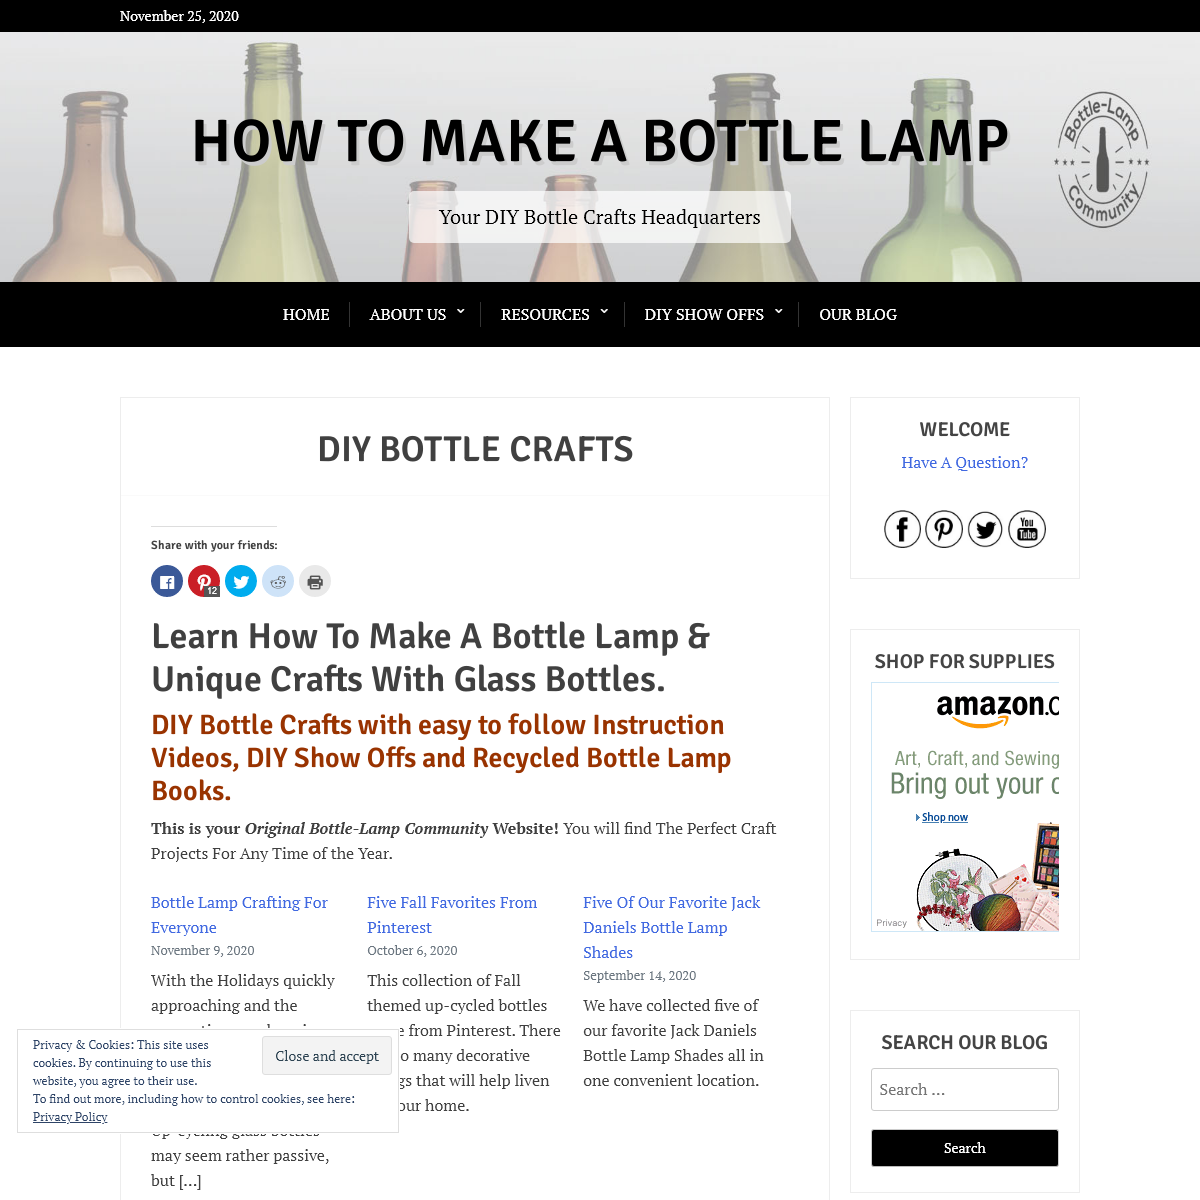 Bottle Lamp & DIY Bottle Crafts Videos & Inspirations